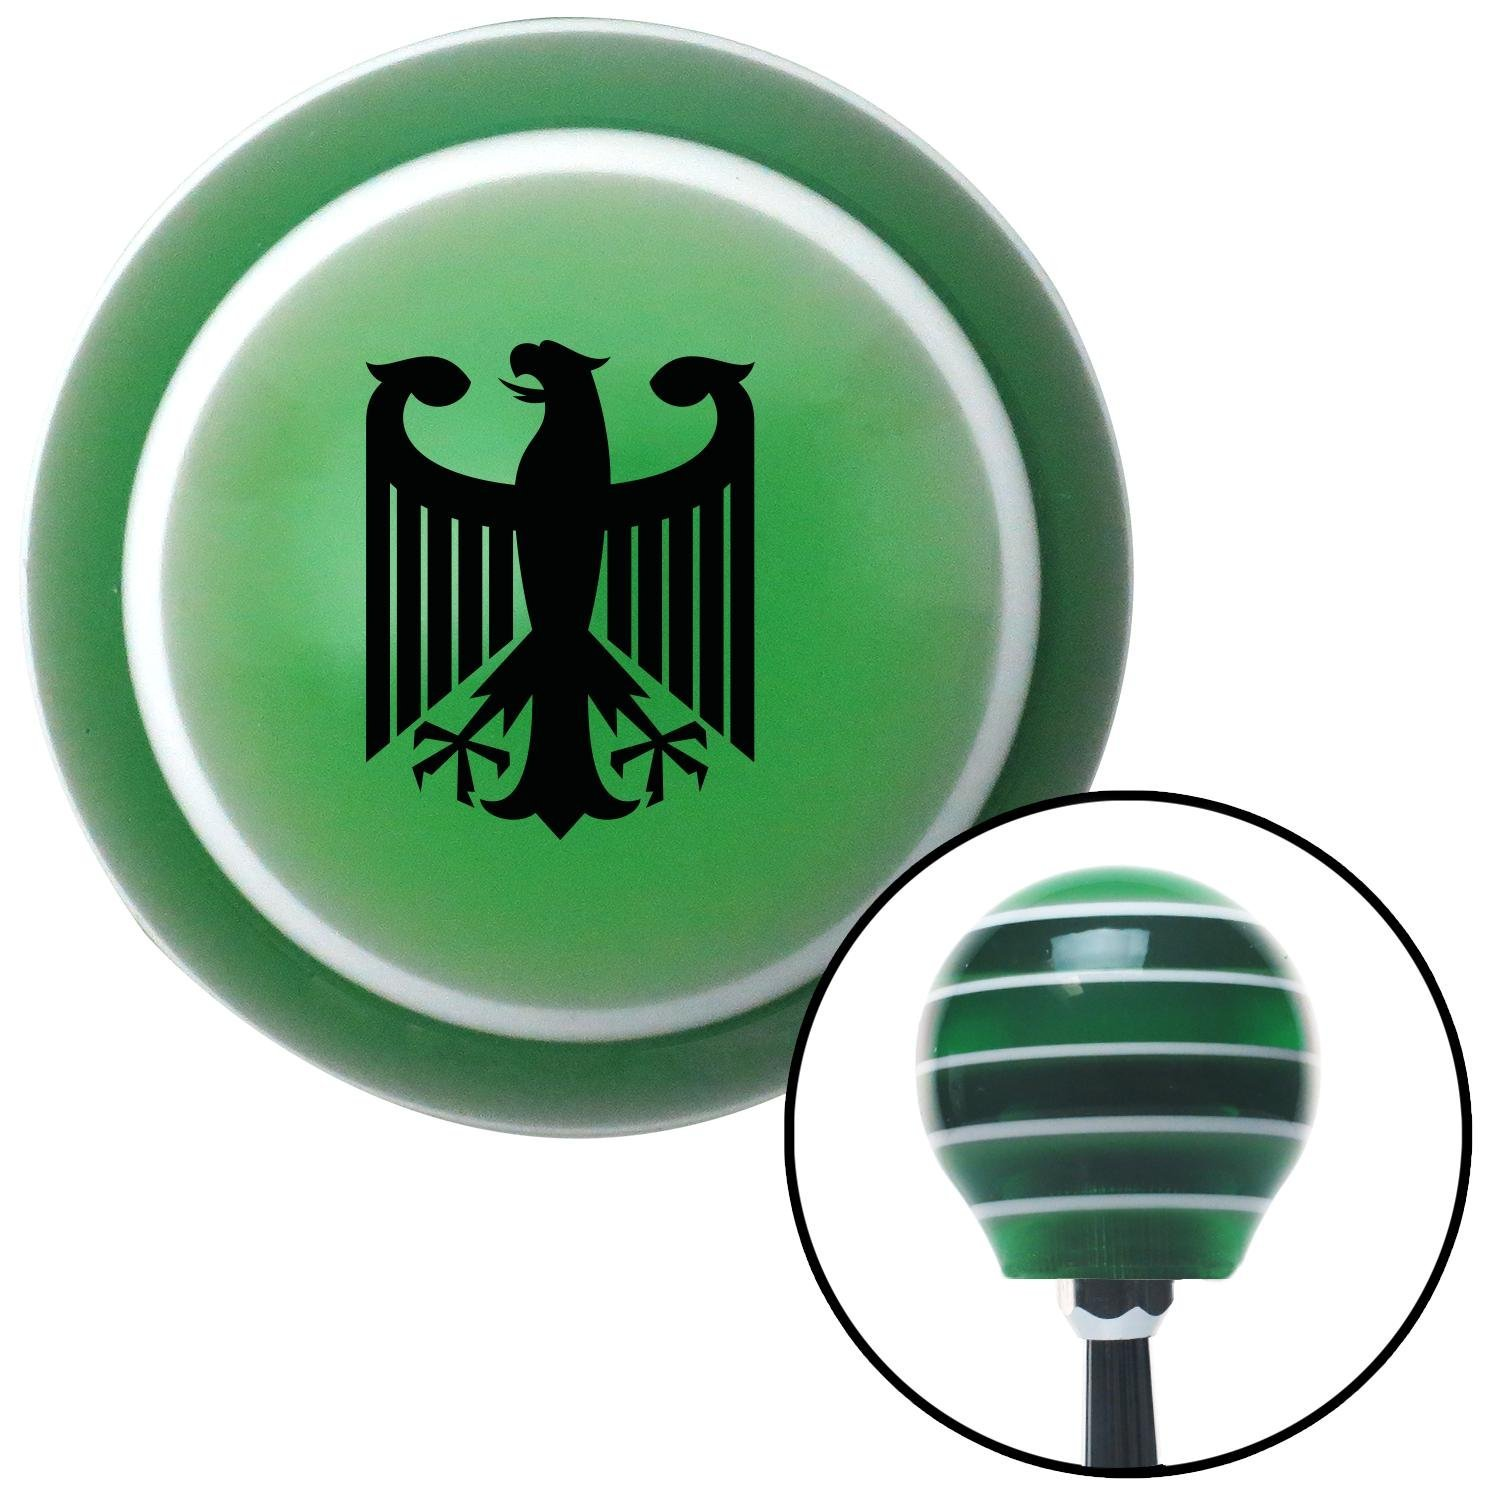 American Shifter 123405 Green Stripe Shift Knob with M16 x 1.5 Insert Black Eagle Coat of Arms